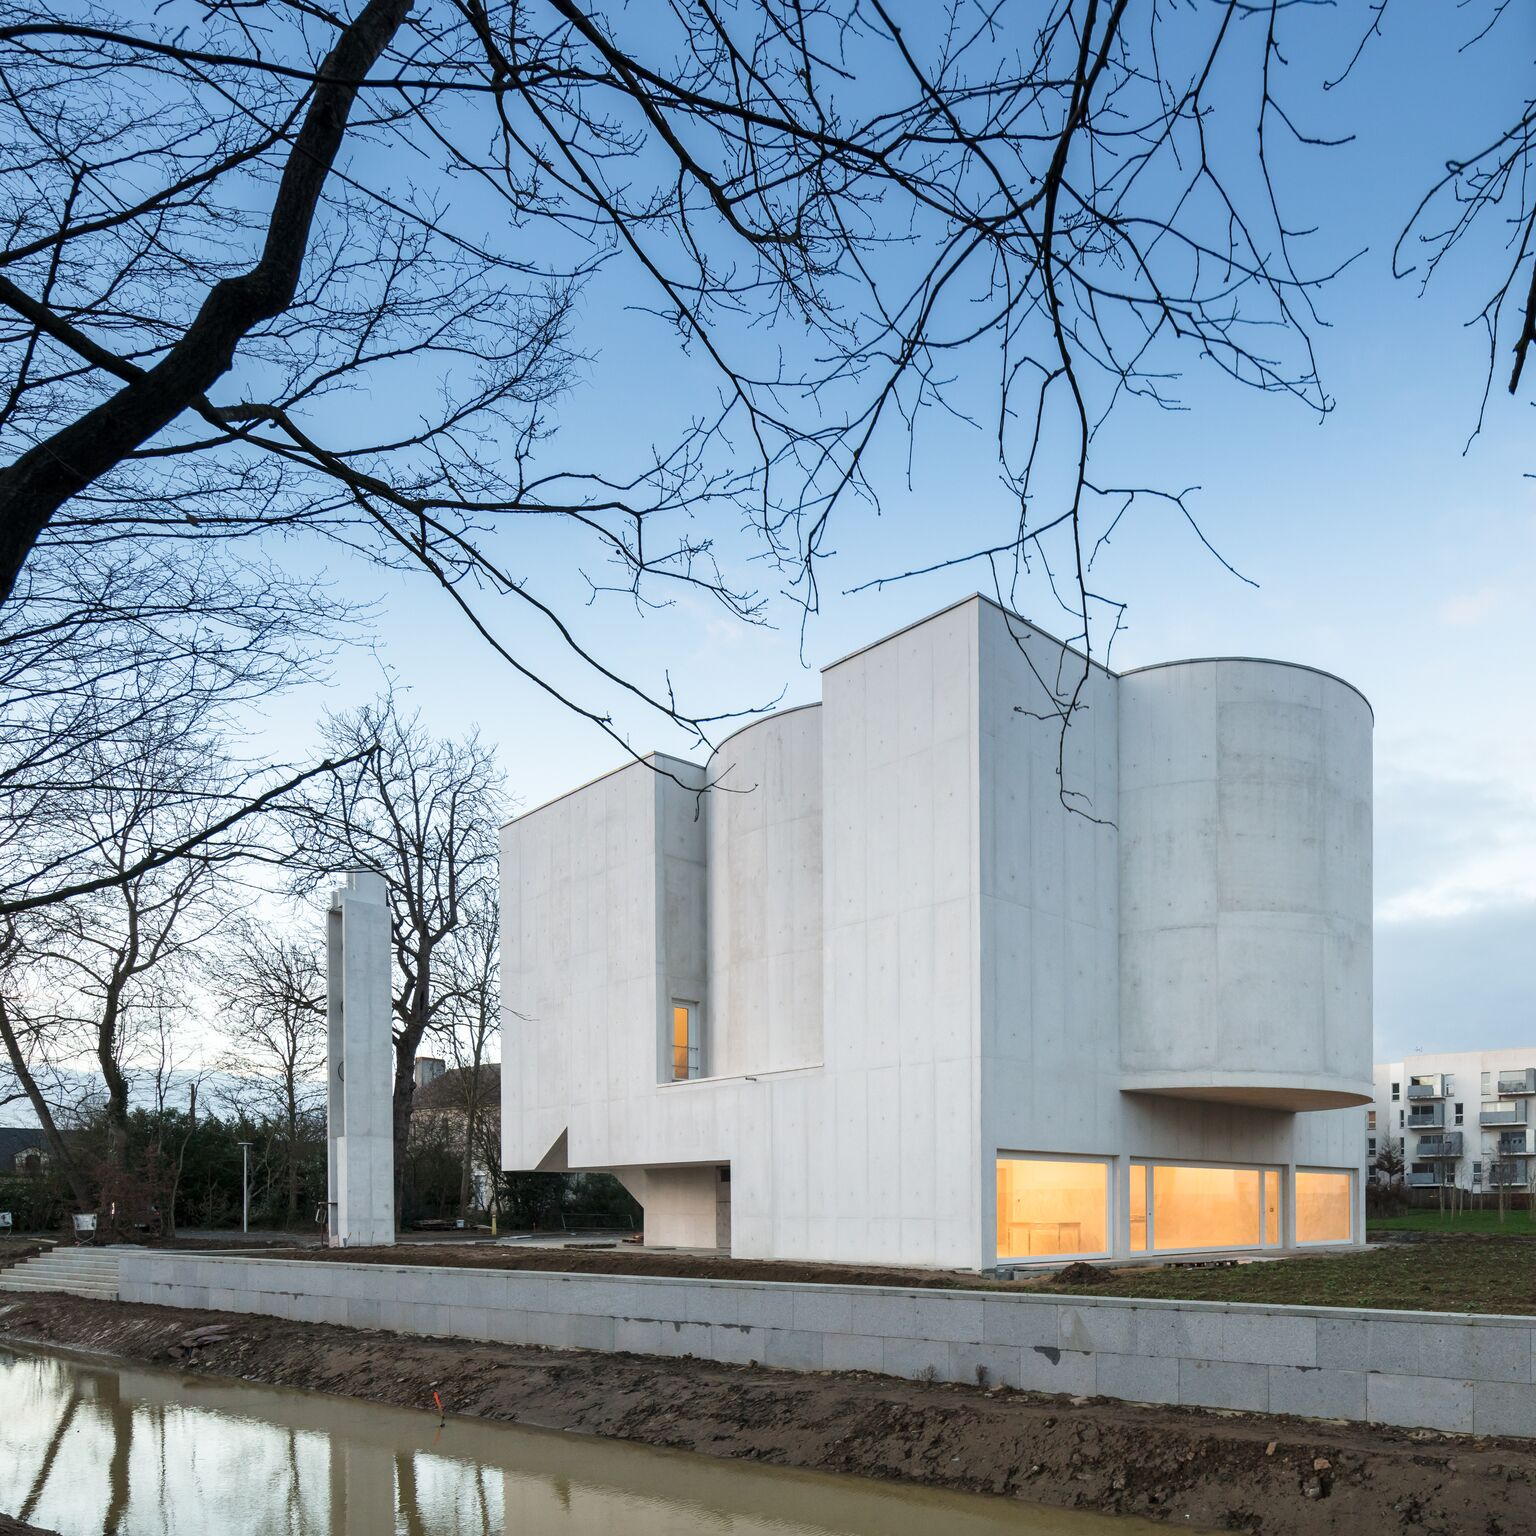 3_Alvaro Siza Vieira_New Church of Saint-Jacques de la Lande_Inspirationist